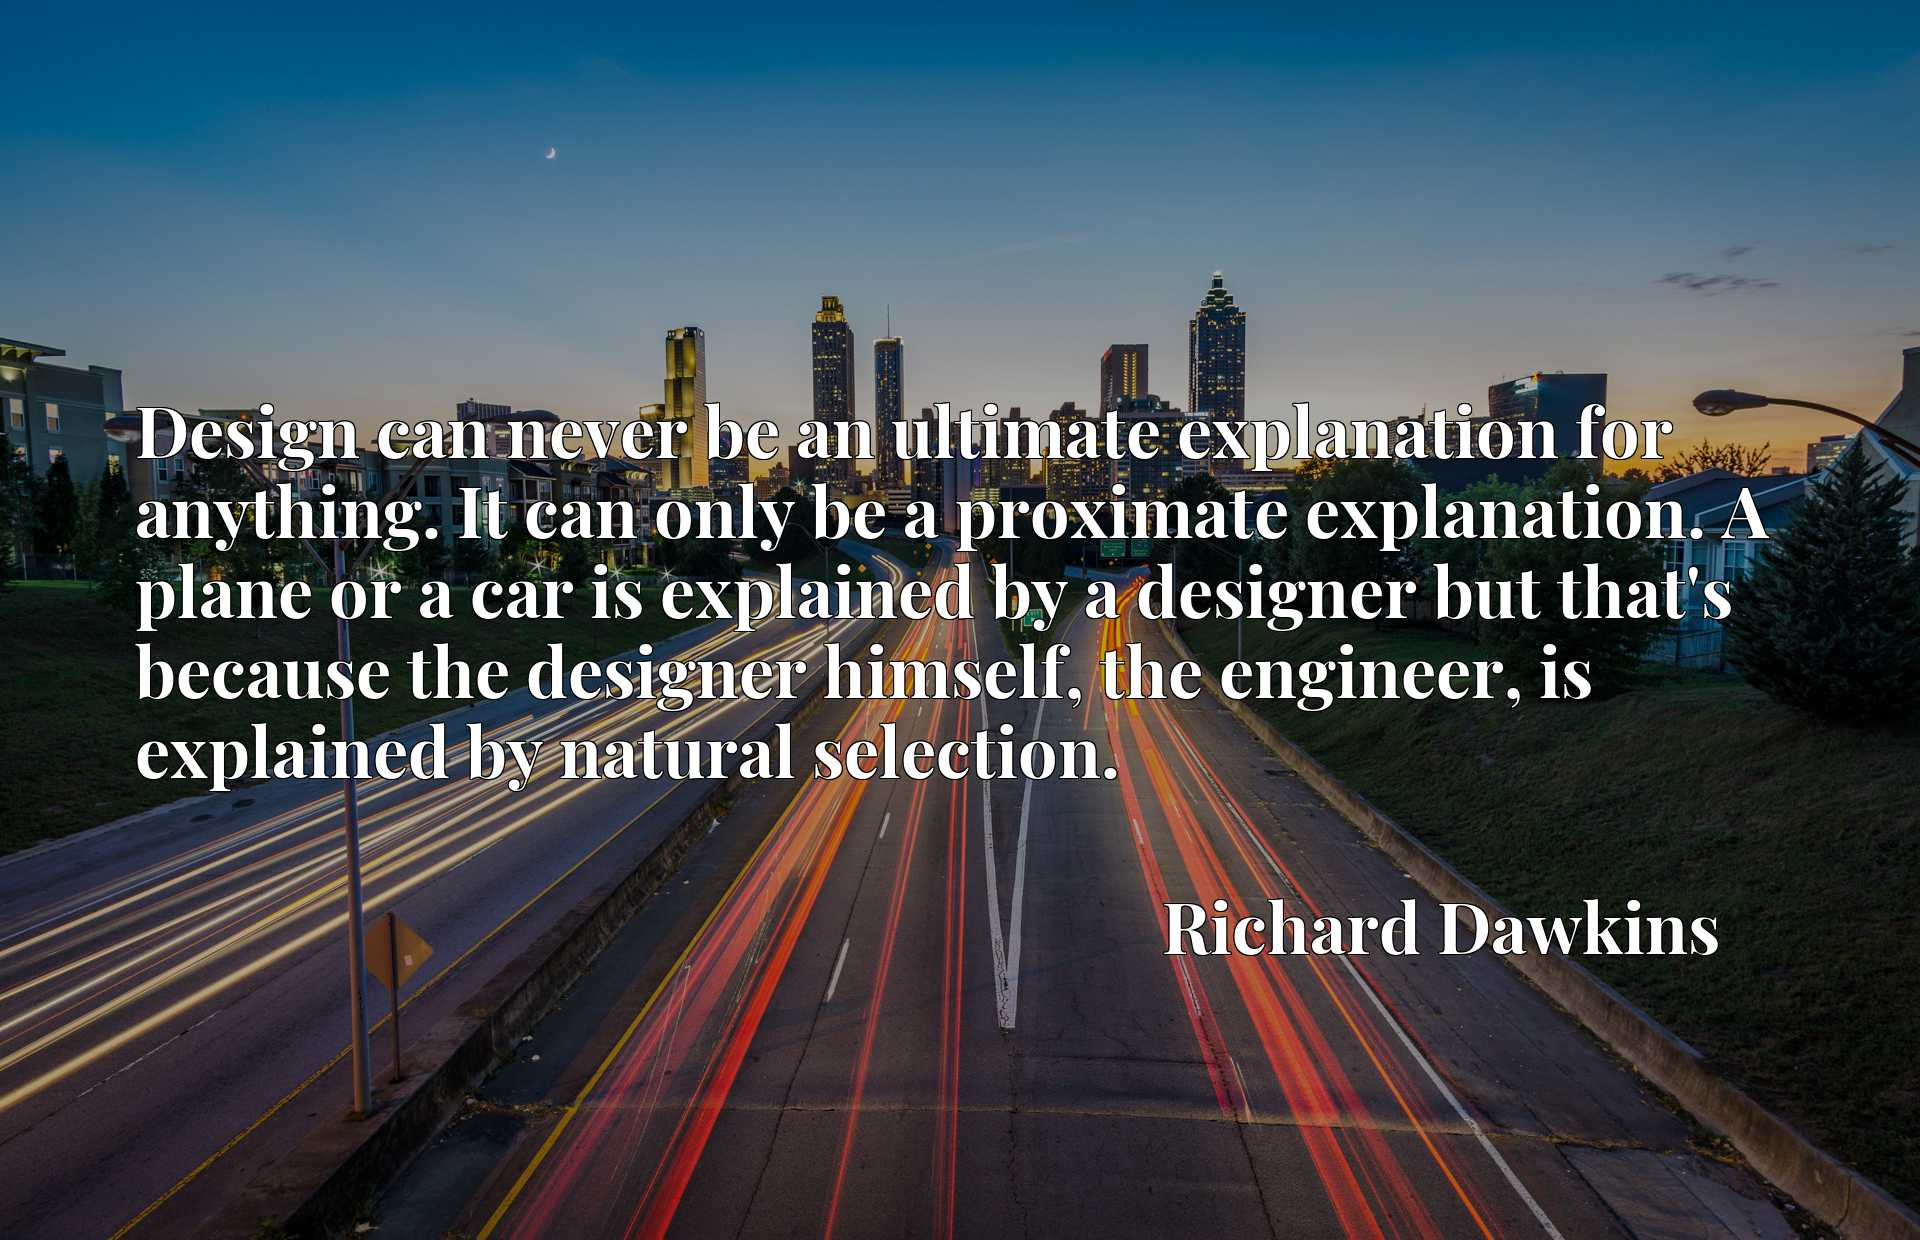 Design can never be an ultimate explanation for anything. It can only be a proximate explanation. A plane or a car is explained by a designer but that's because the designer himself, the engineer, is explained by natural selection.